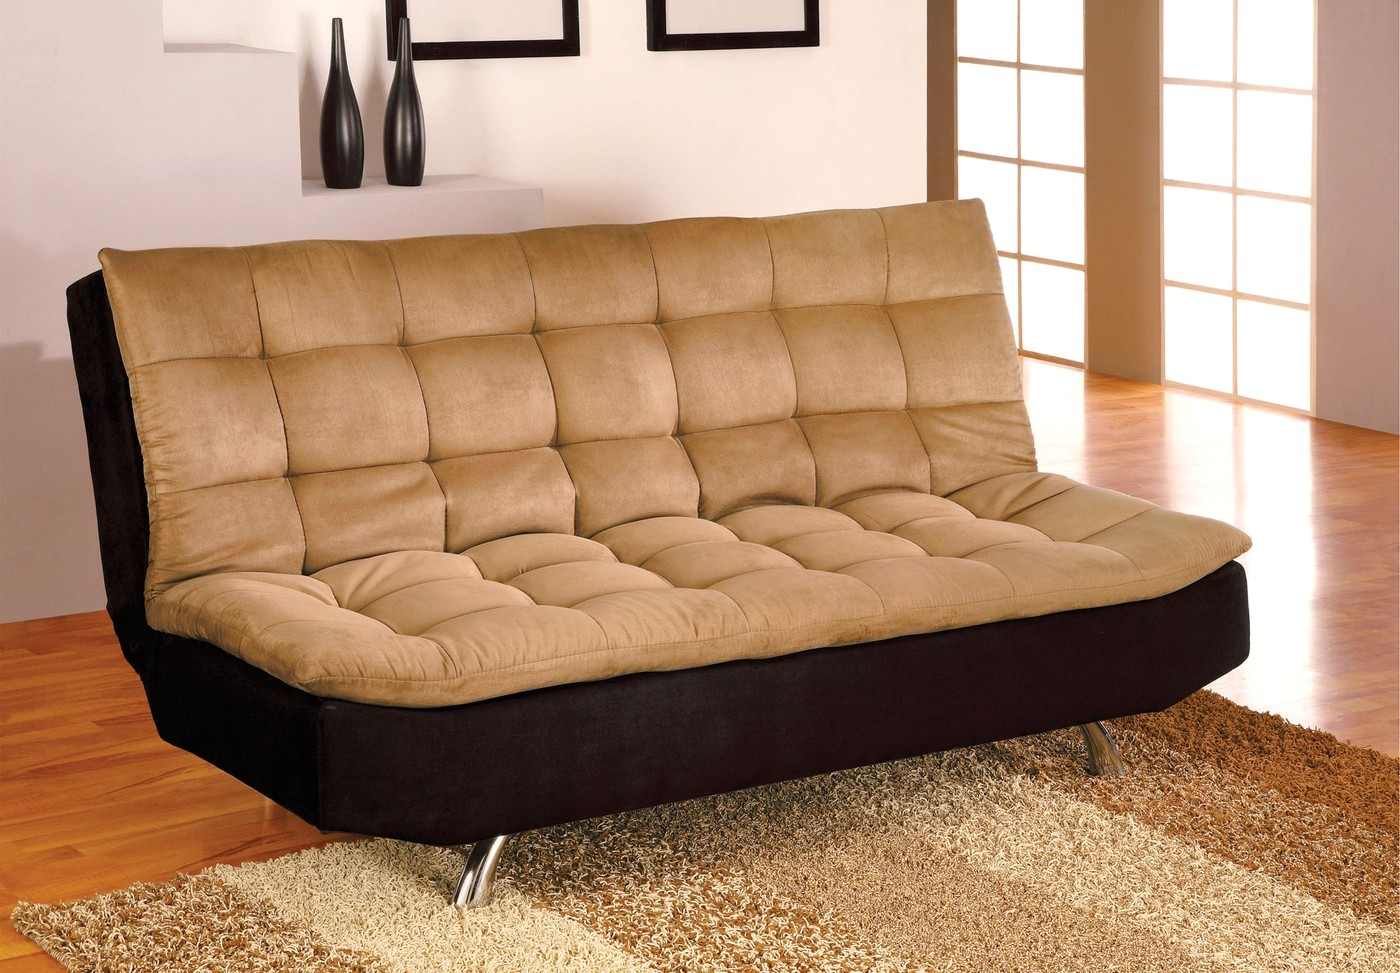 Awe Inspiring Details About New Balham Contemporary Tan And Black Futon Sofabed With Microfiber Seat Brown Spiritservingveterans Wood Chair Design Ideas Spiritservingveteransorg